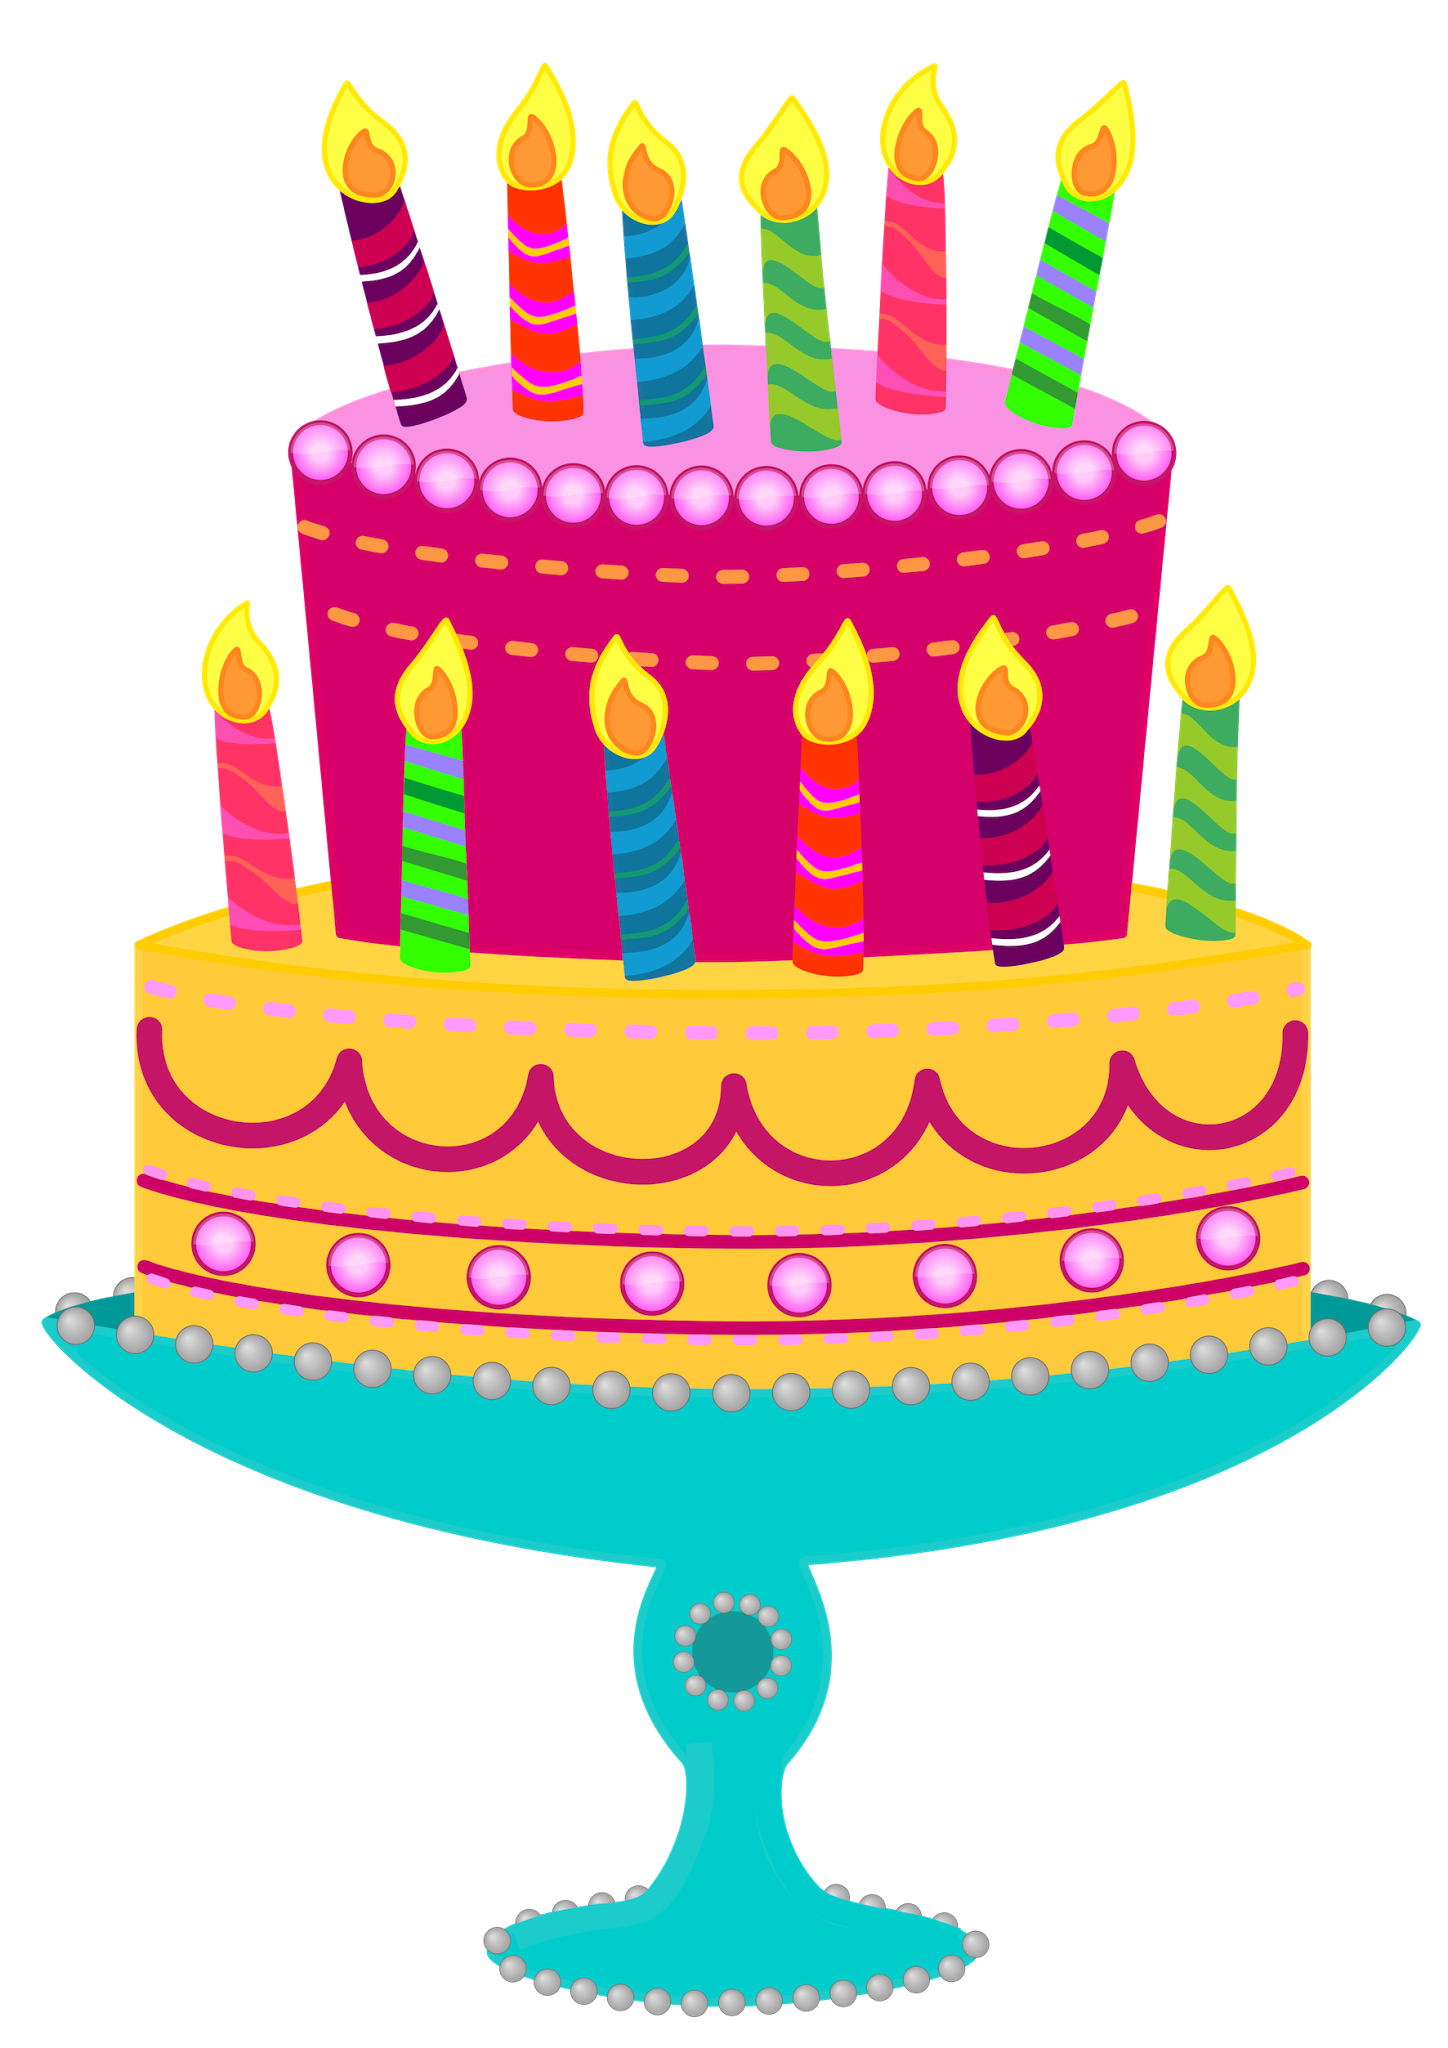 Birthday cake clipart png. Free picture of cakes